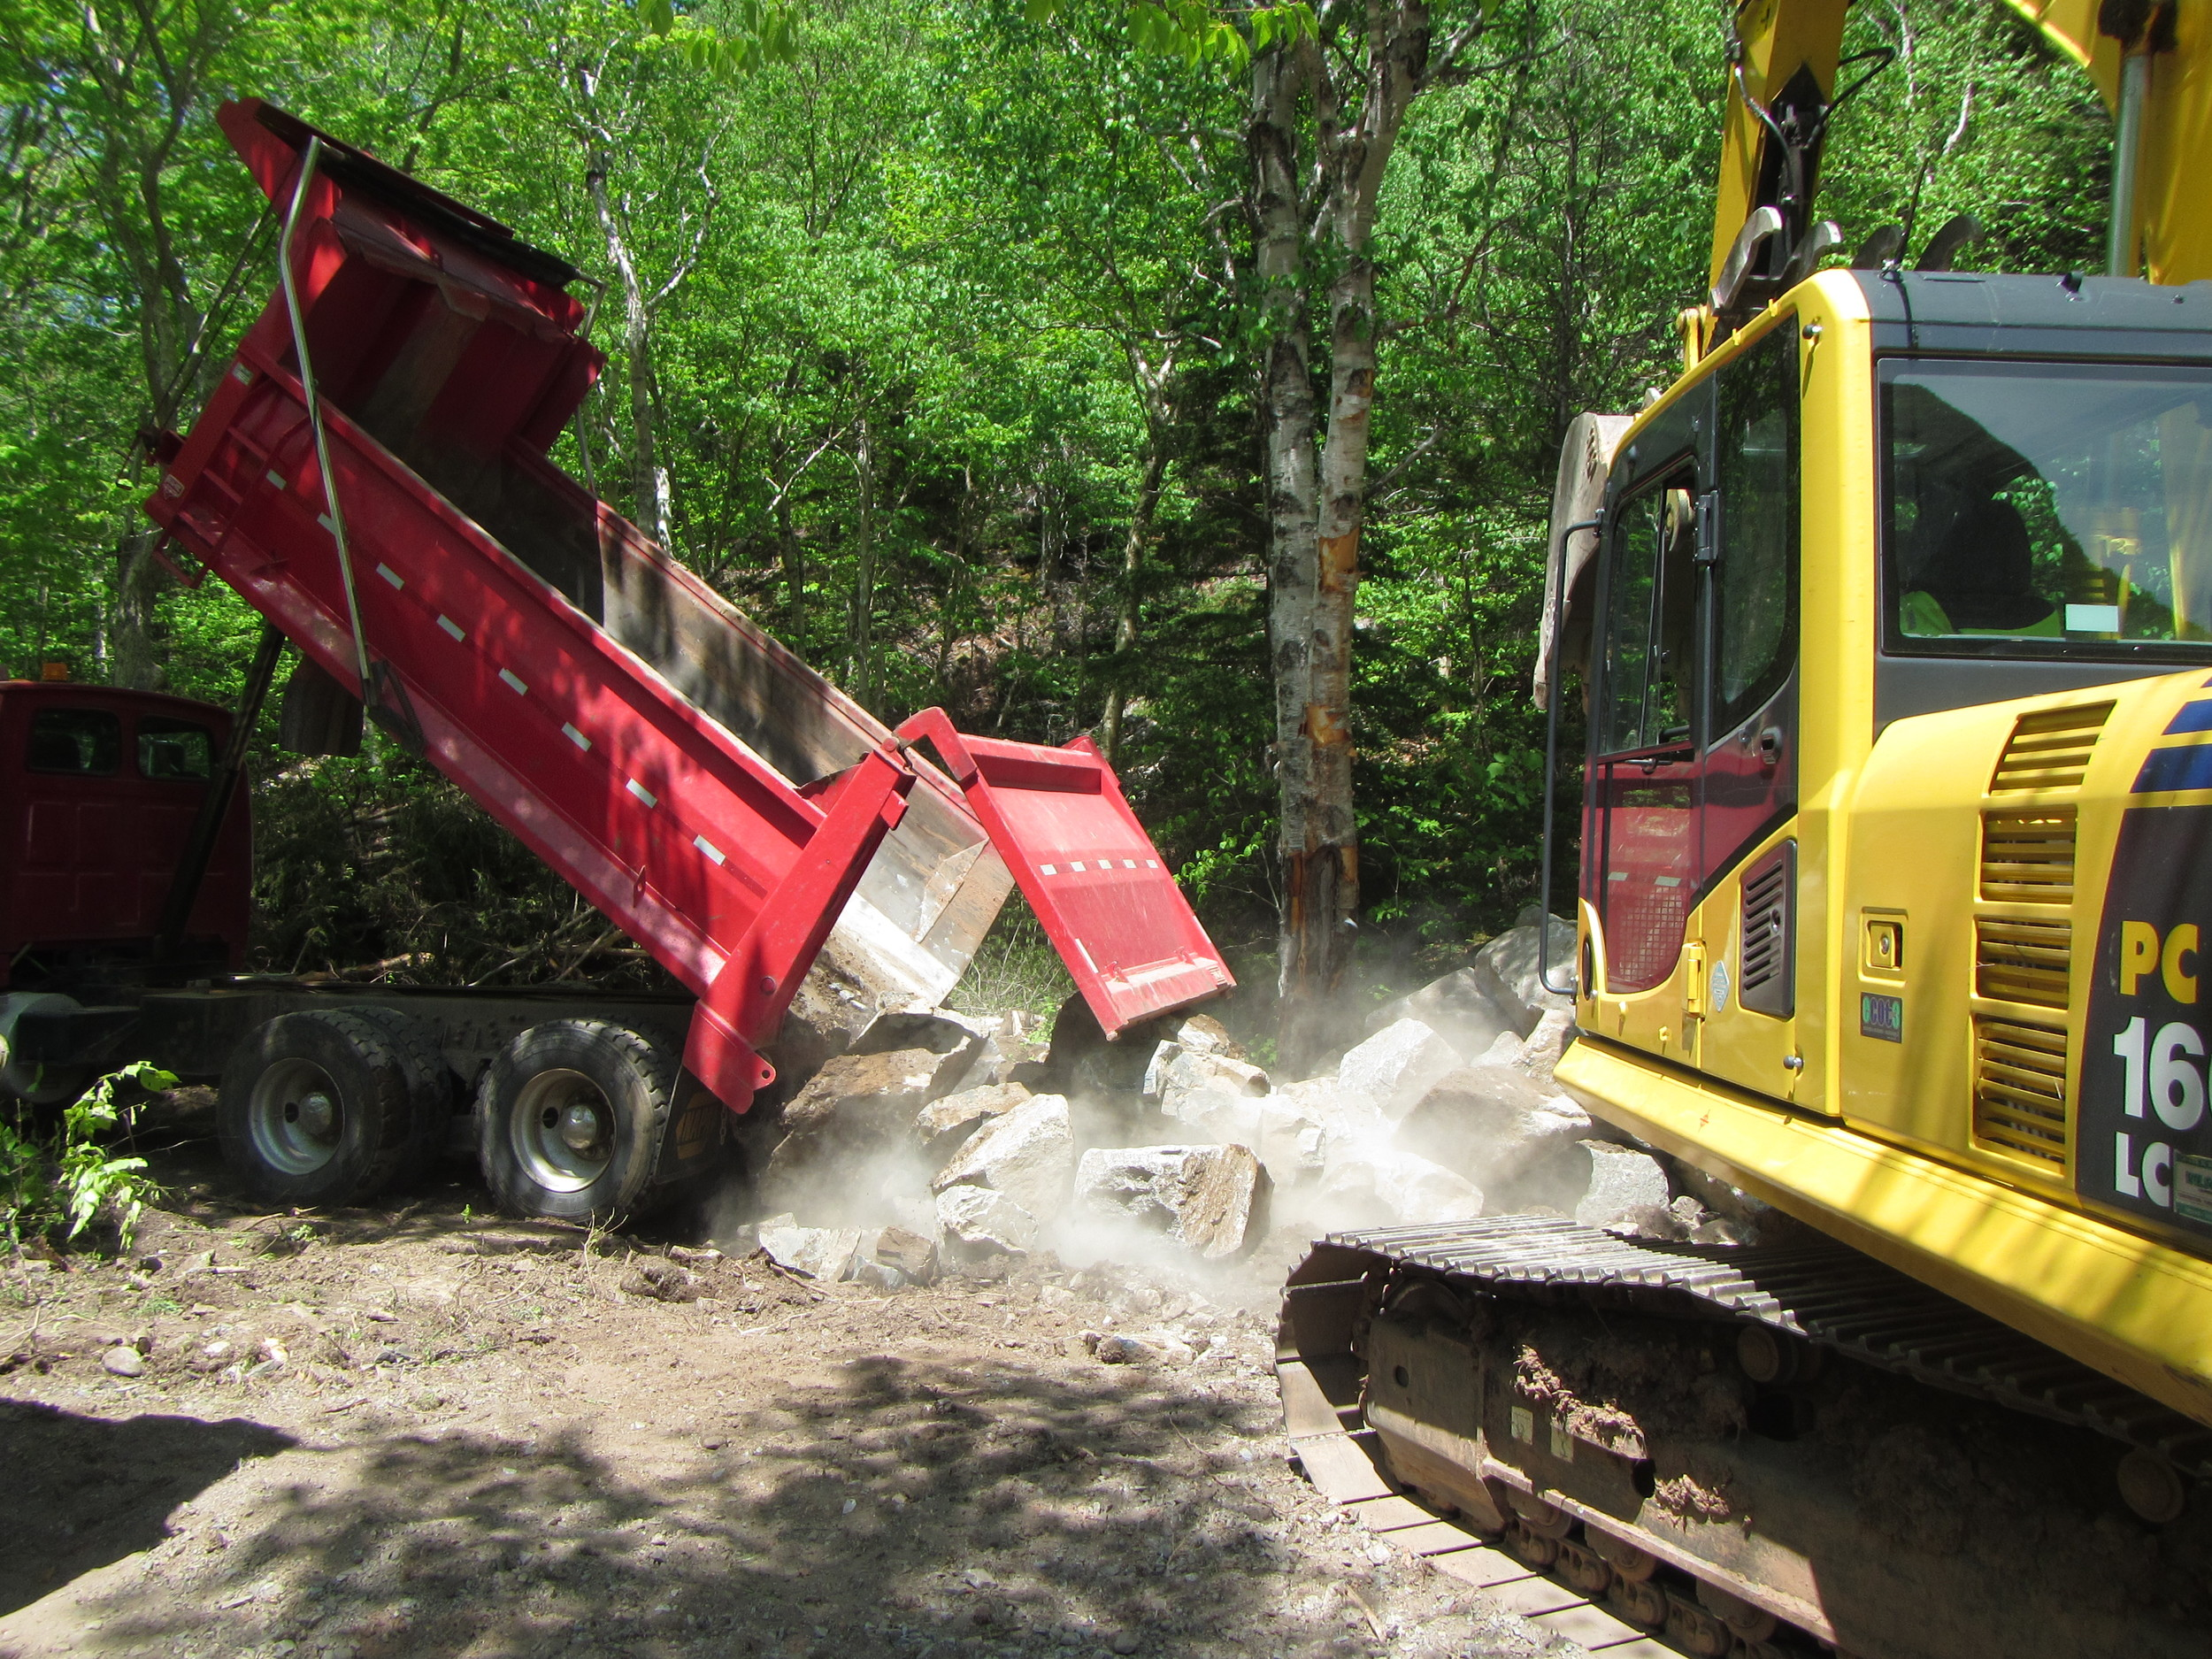 Boulders being stock piled at the work site.